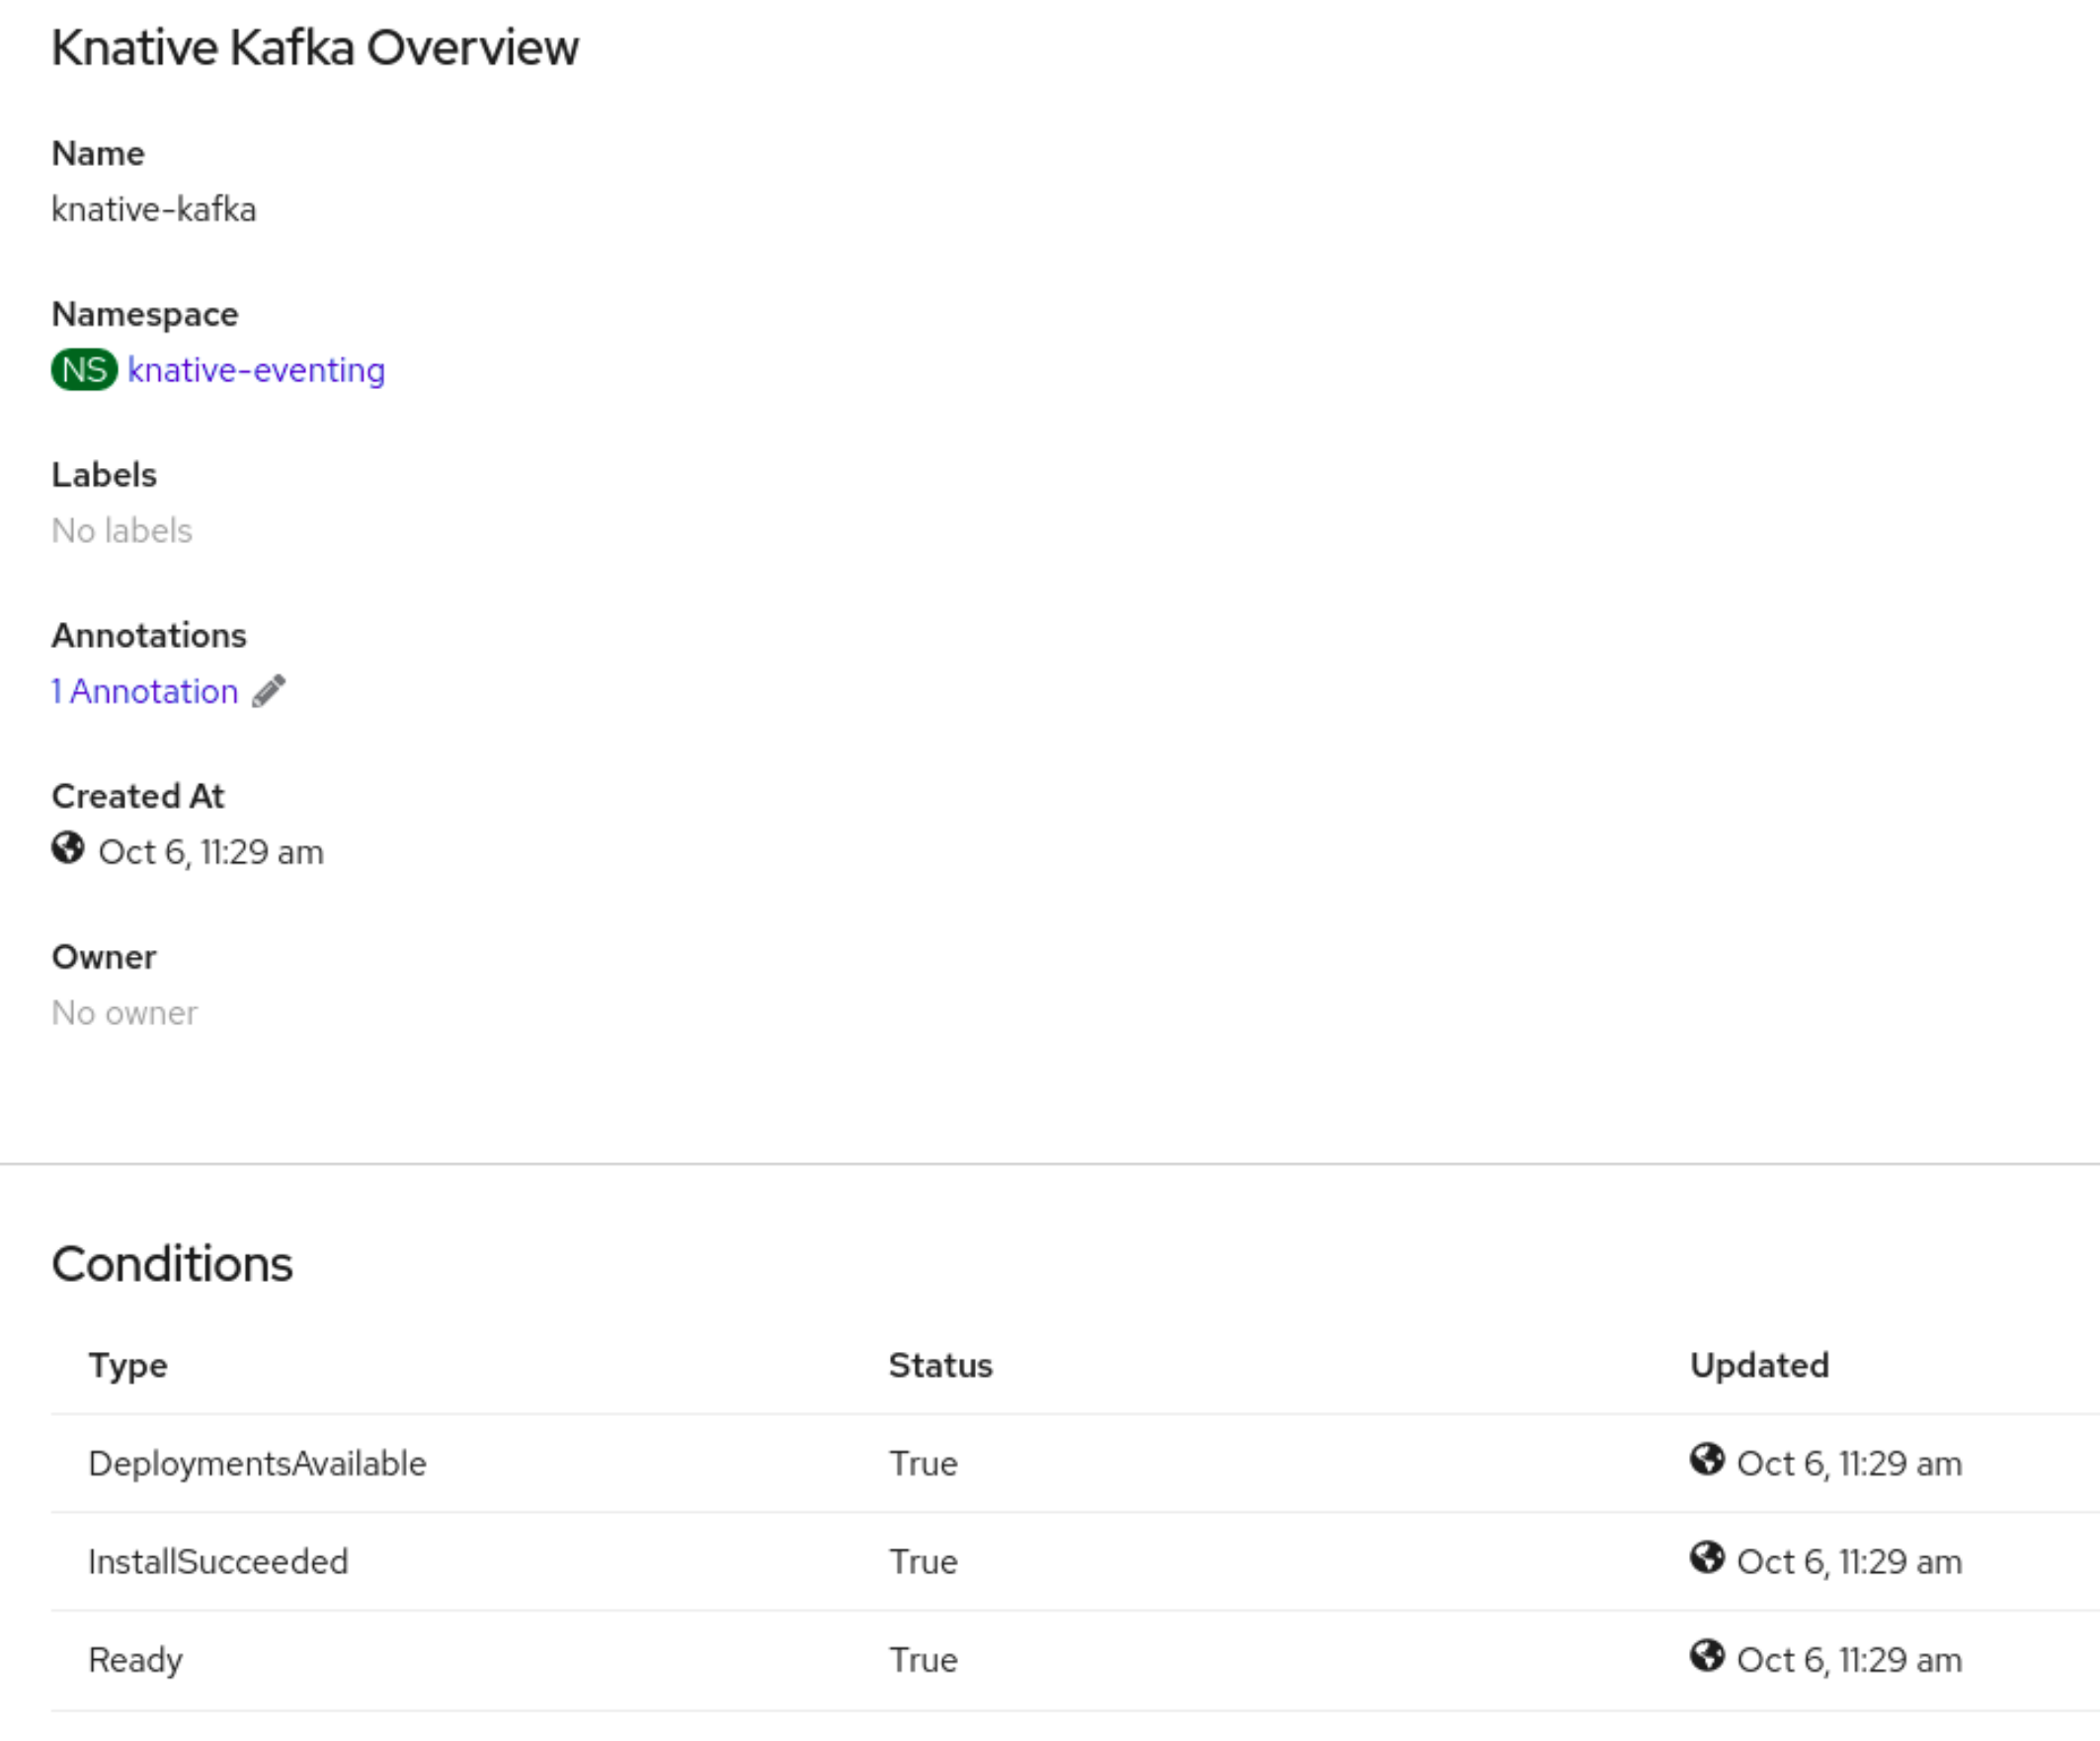 Kafka Knative Overview page showing Conditions